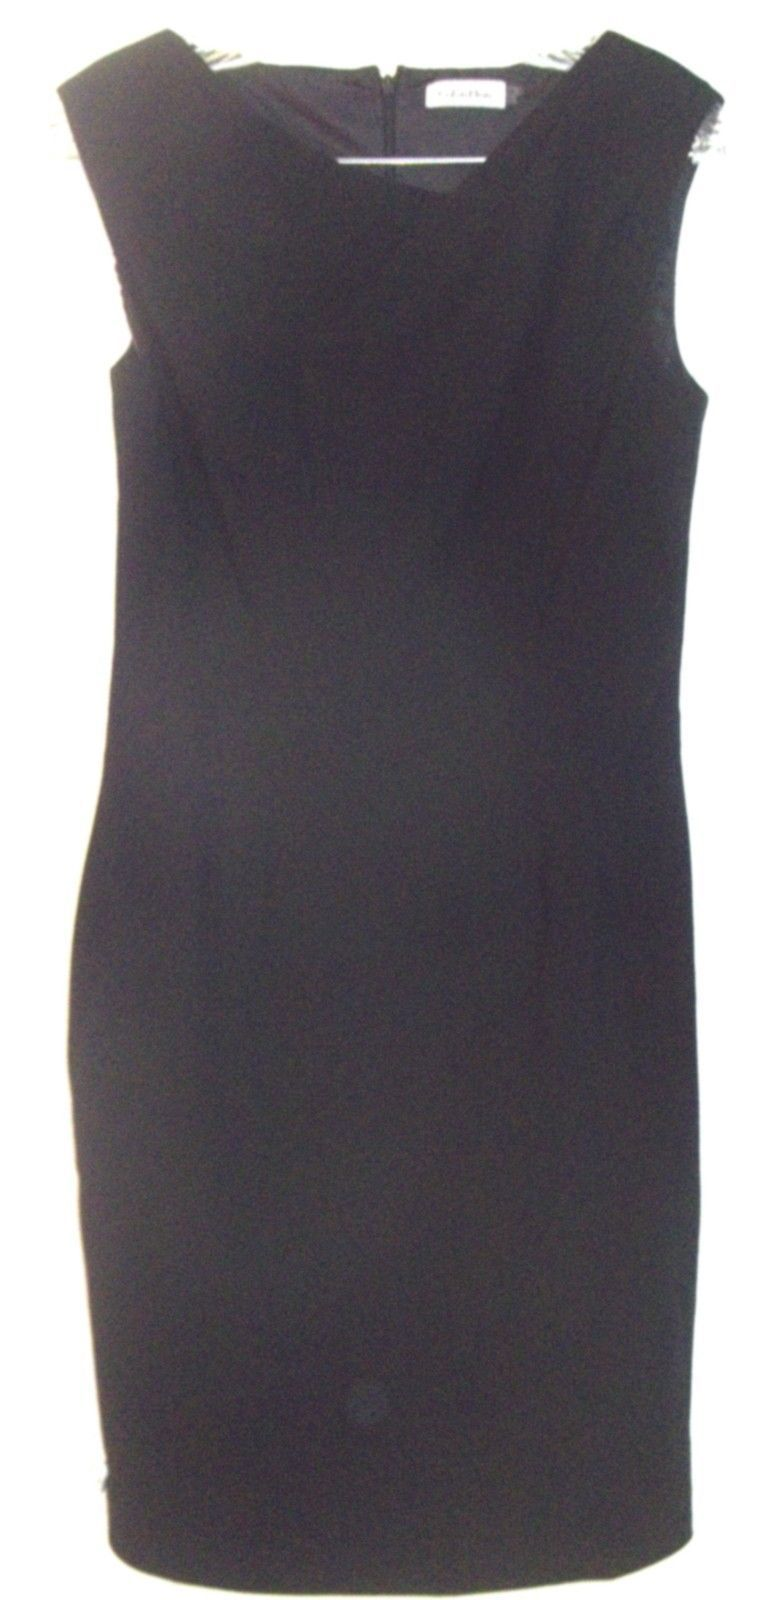 Primary image for Calvin Klein Black Sleeveless Dress with Waistline Darts Sz 6